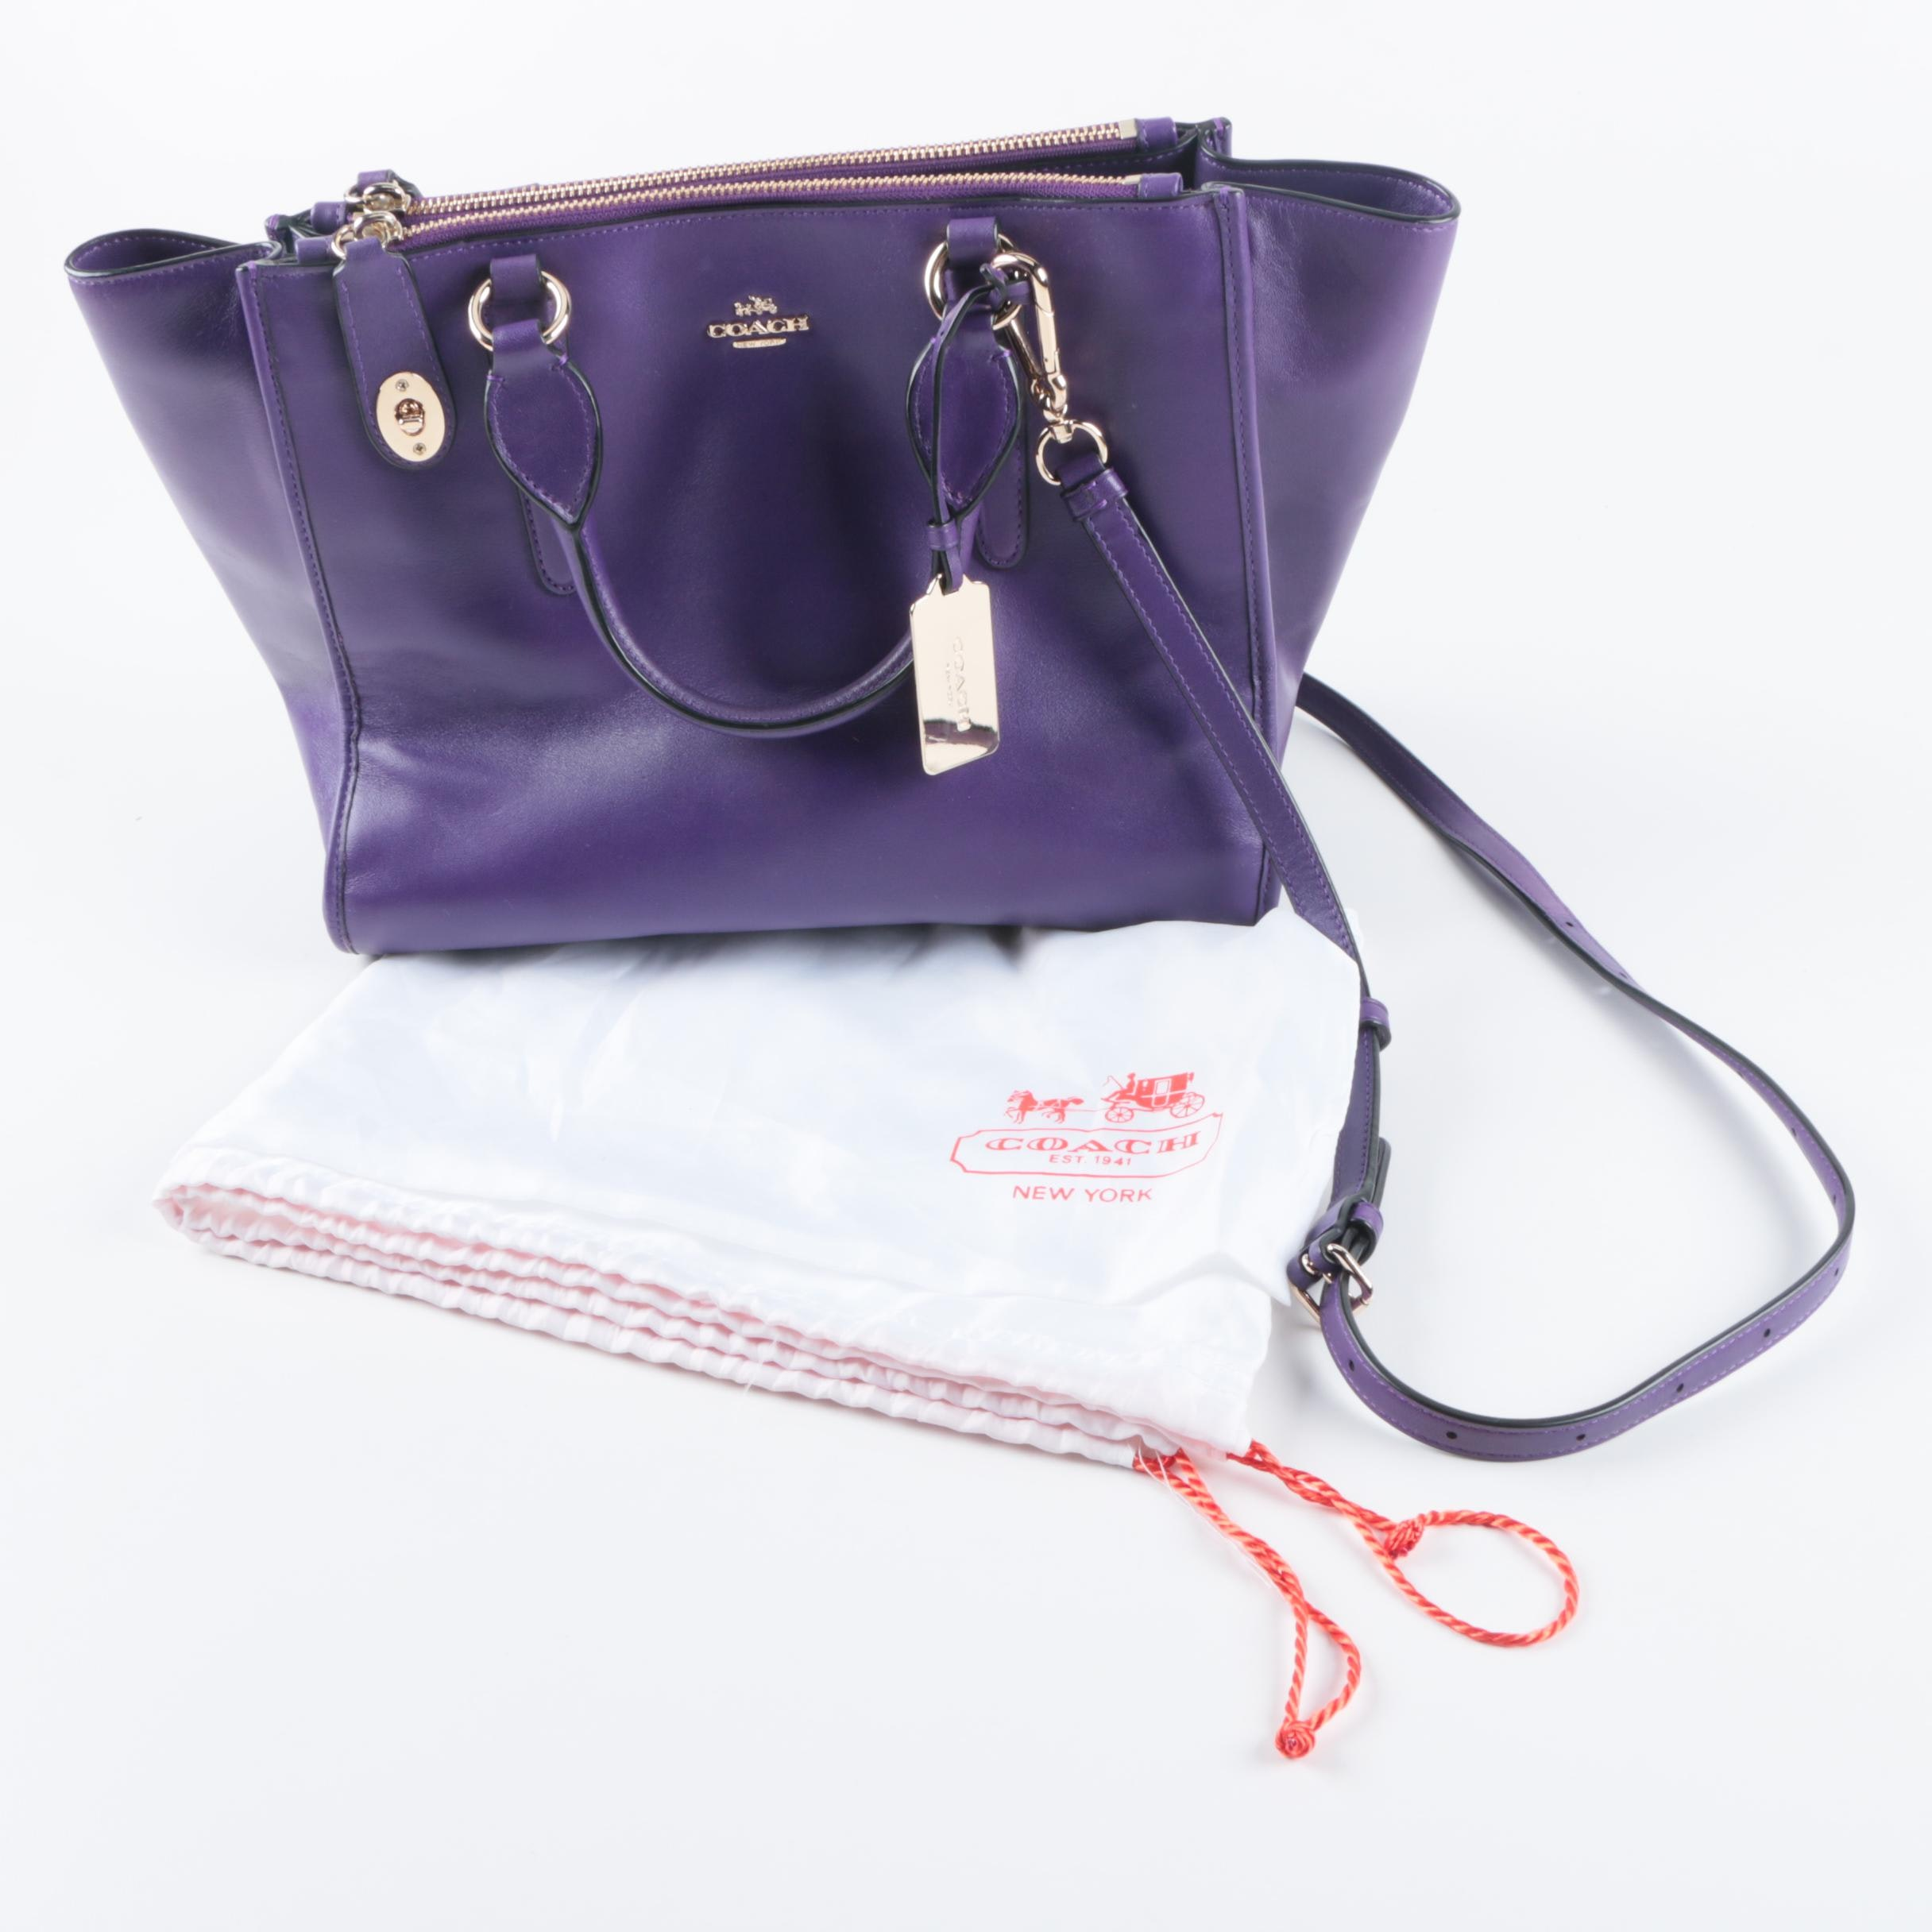 Coach Purple Leather Crosby Convertible Carryall